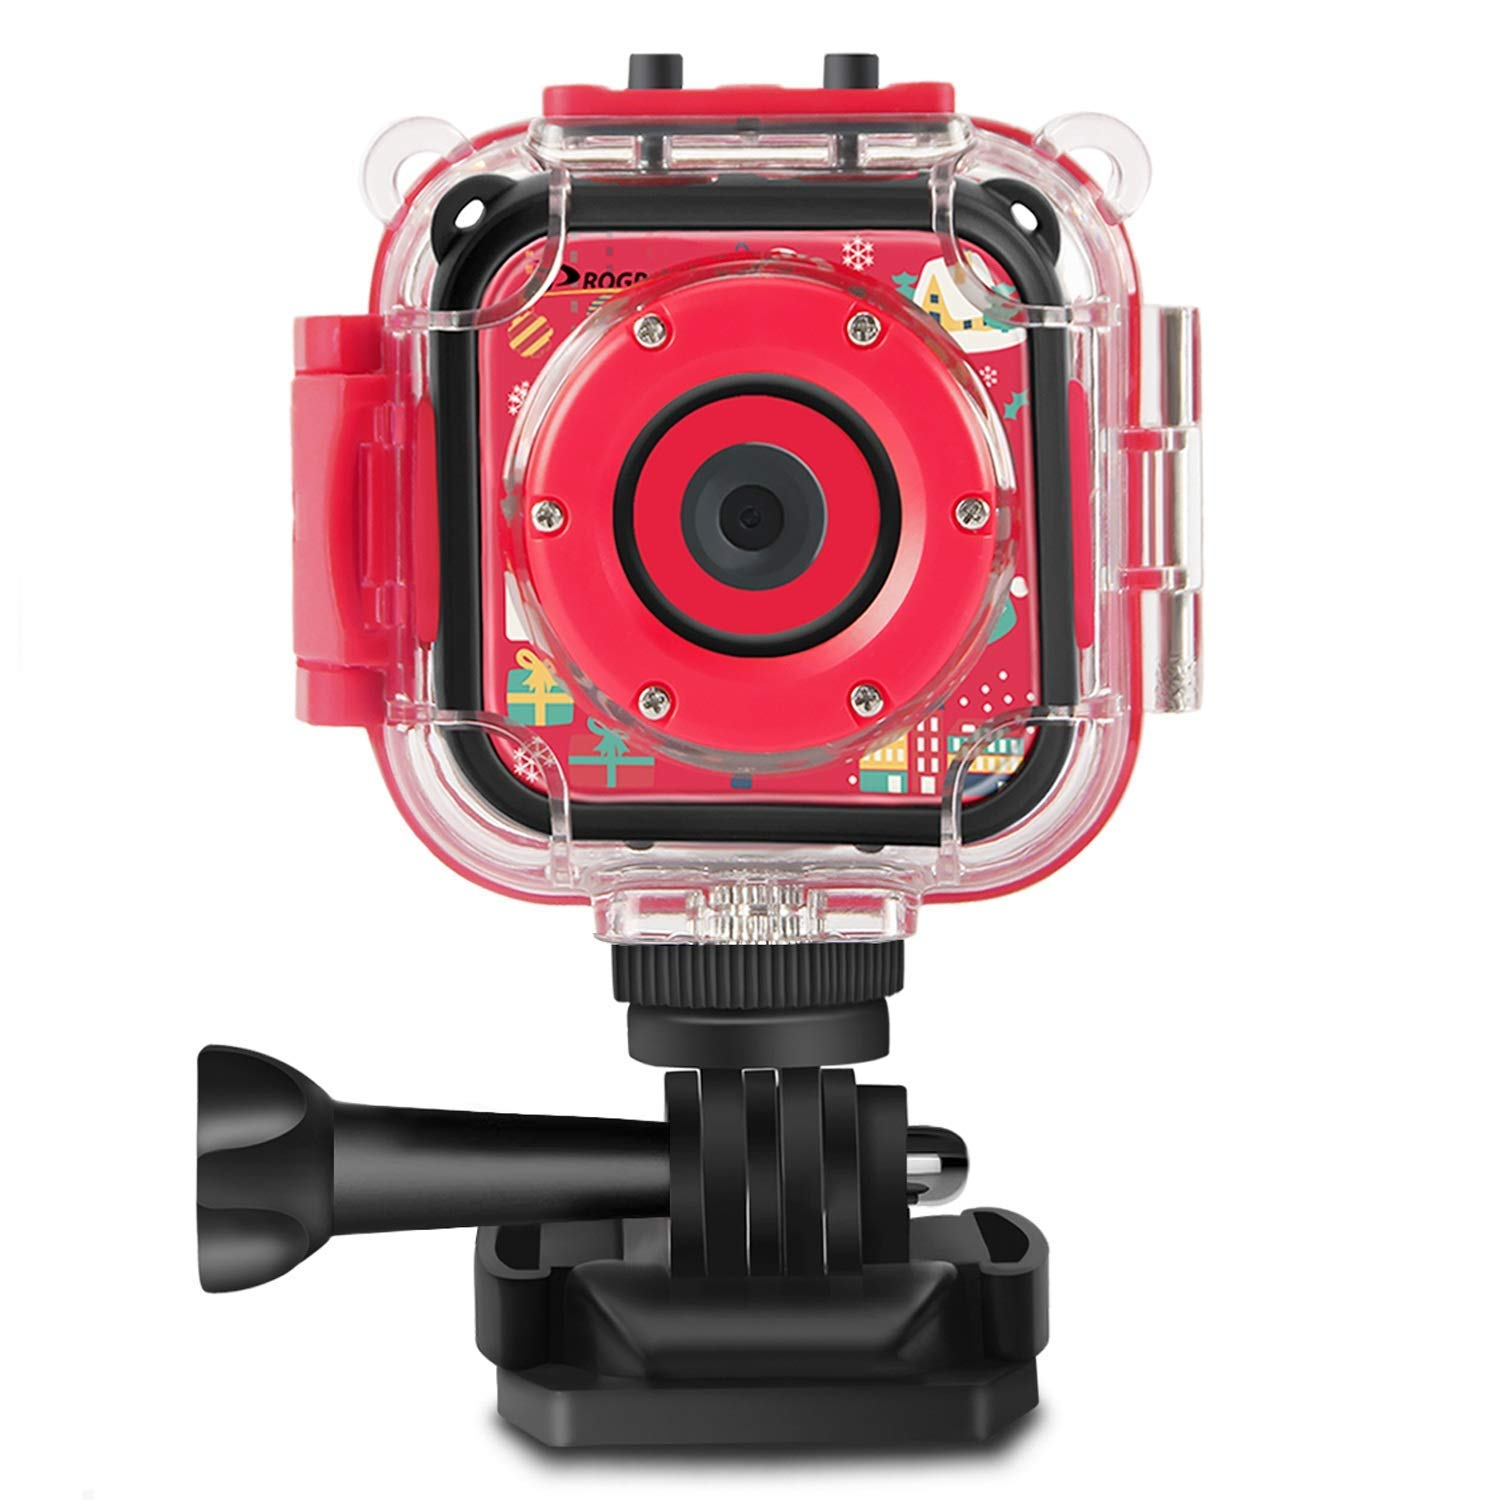 PROGRACE Kids Camera Underwater Waterproof Camera for Kids Camcorder for Boys Girls 4X Zoom-Red by PROGRACE